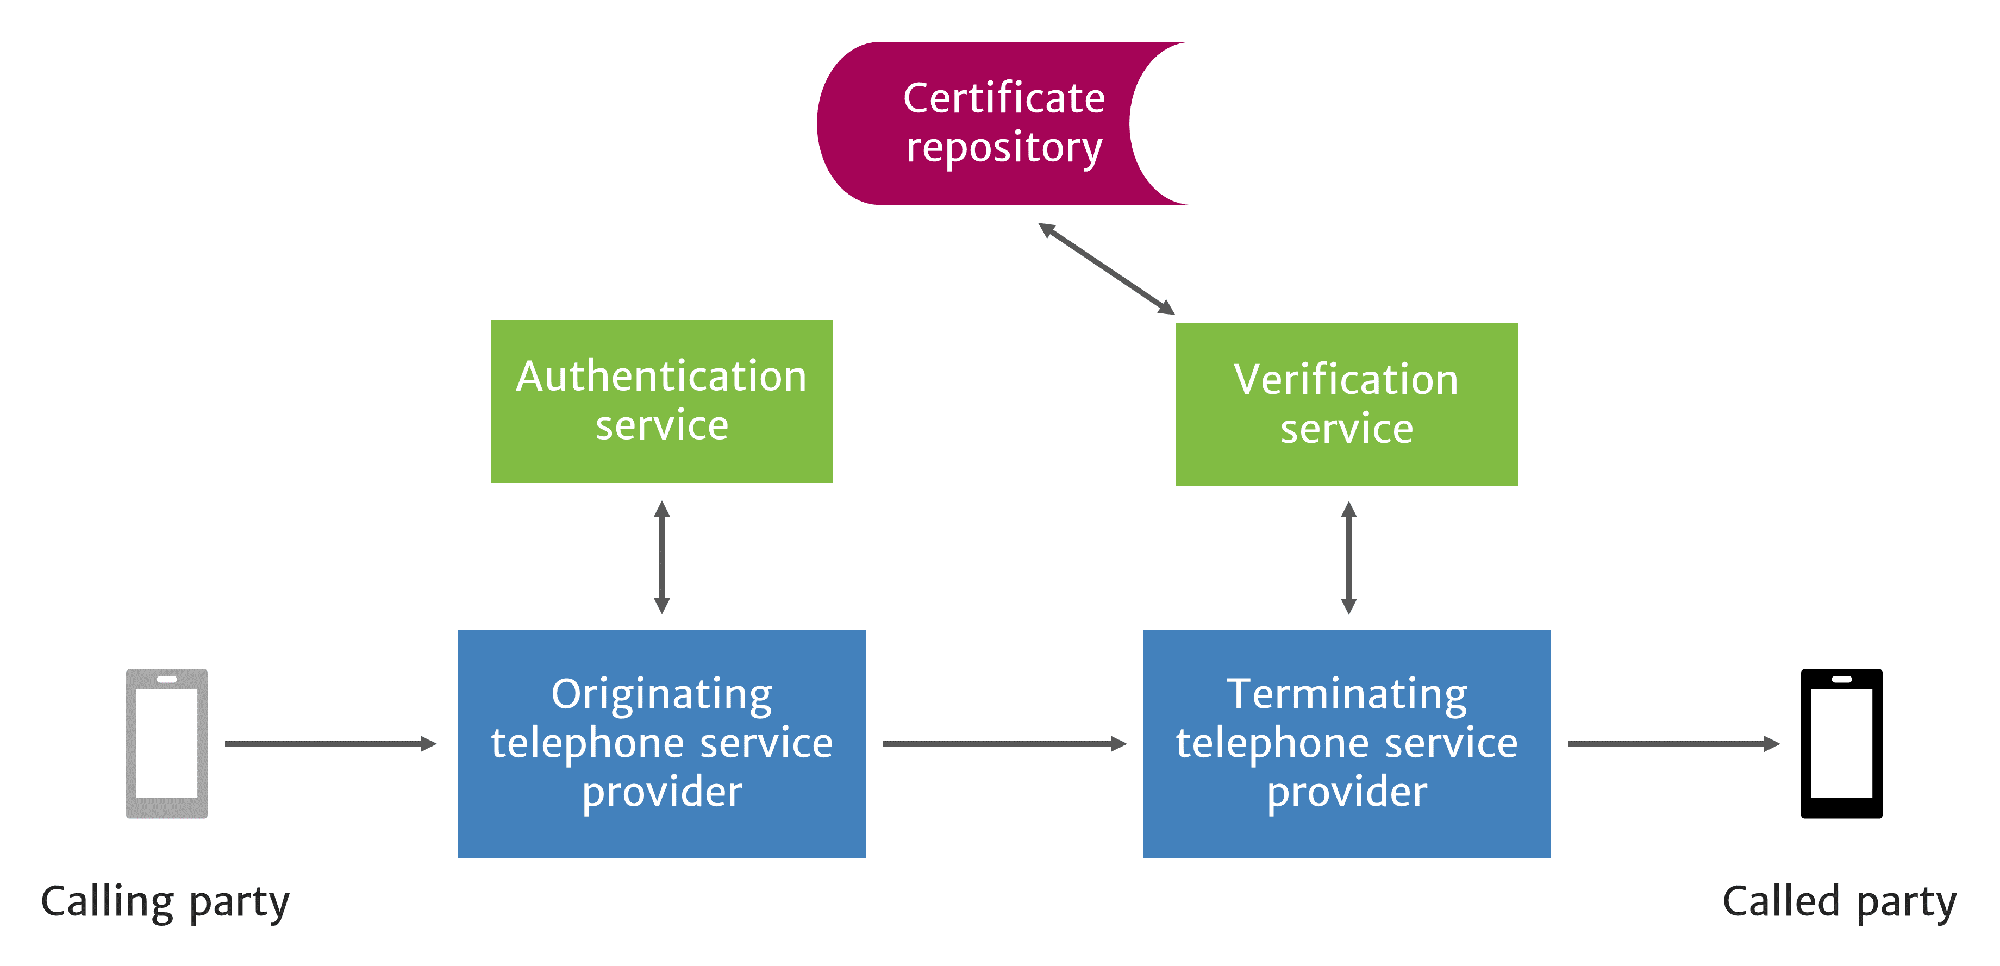 STIR/SHAKEN authenticates and verifies caller ID